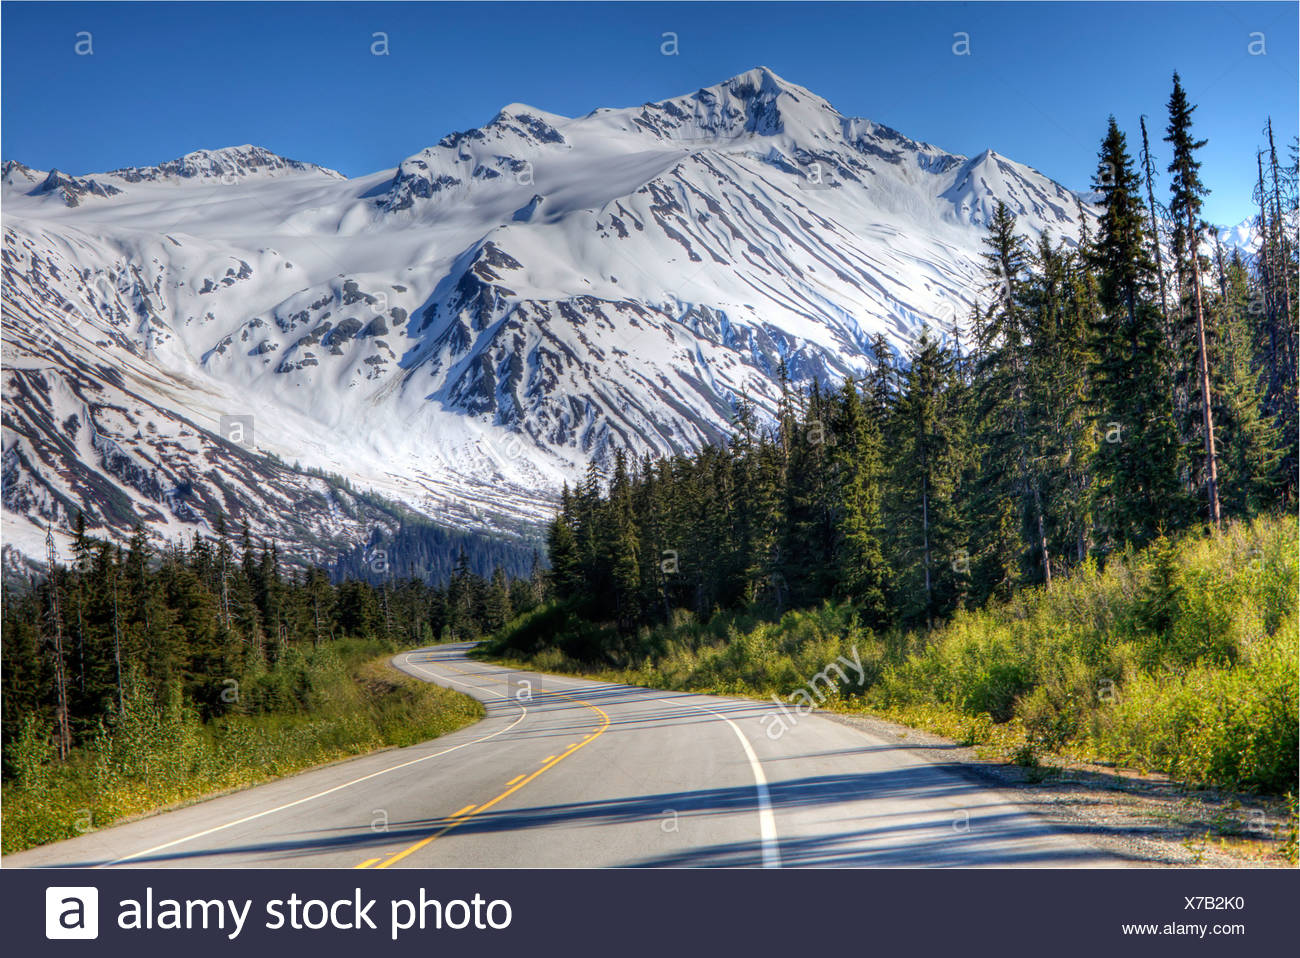 Scenic view of the Haines Highway in Southeast Alaska during Summer - Stock Image